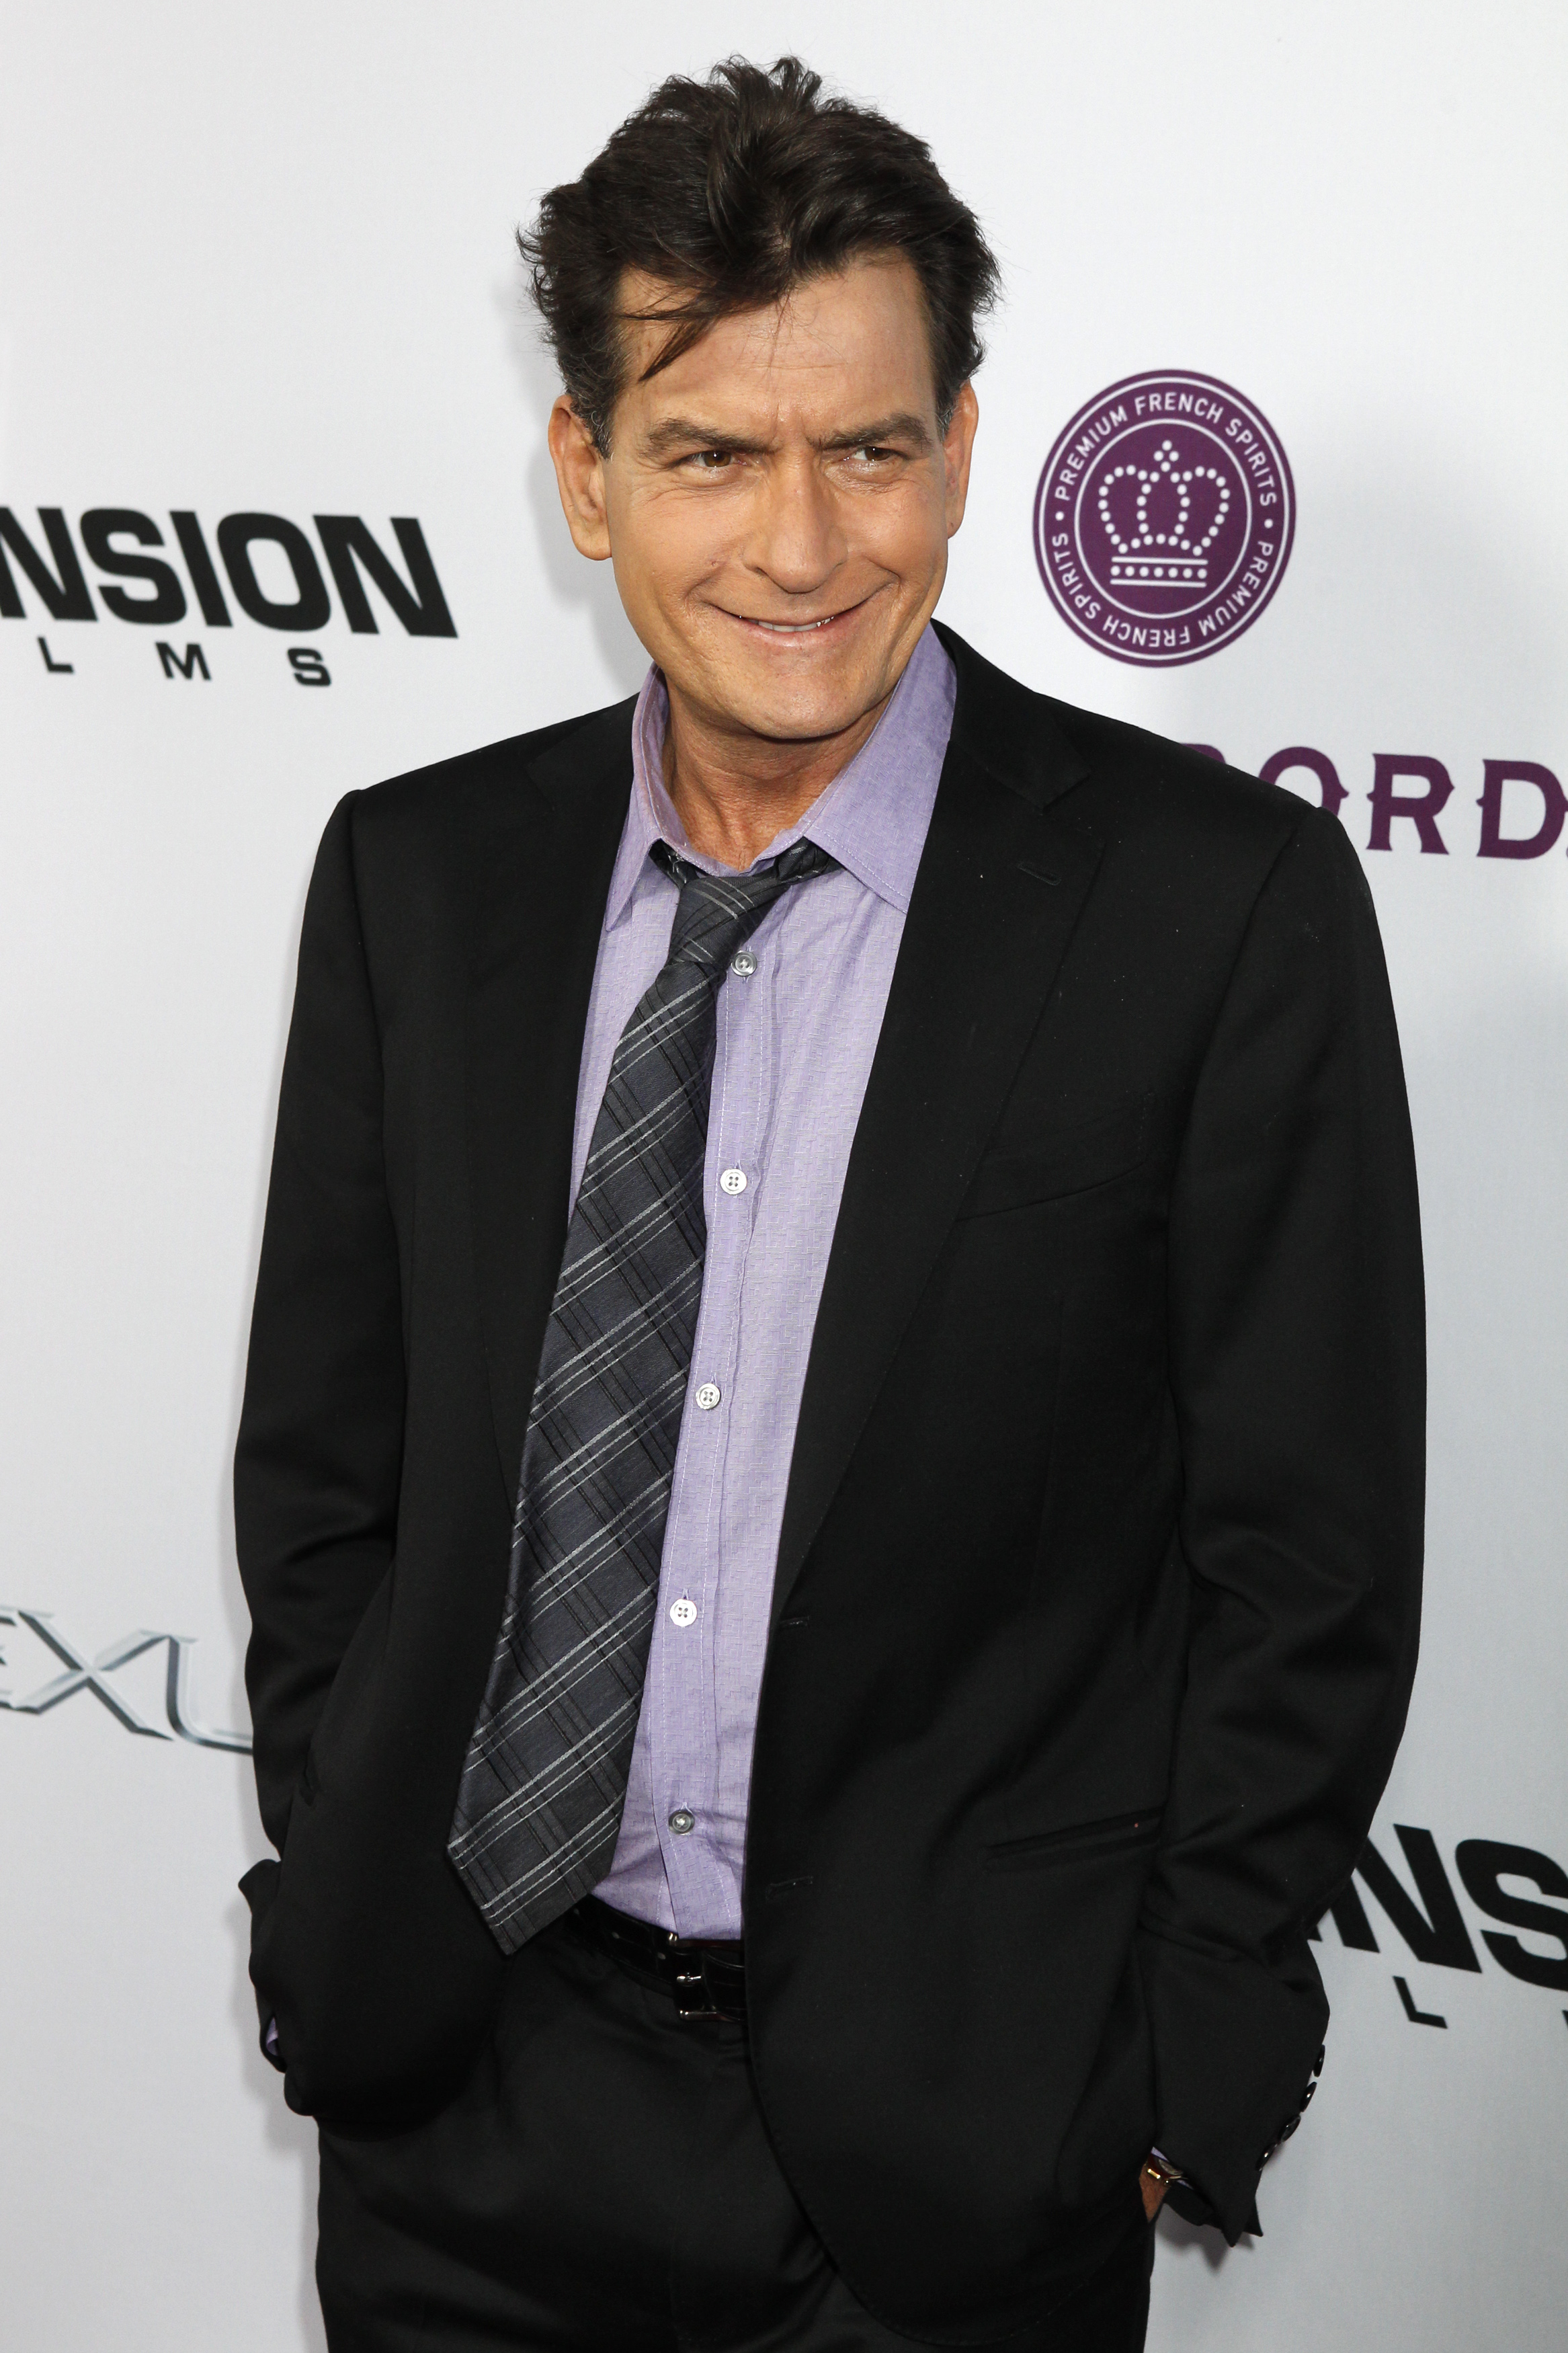 Charlie Sheen set to marry for fourth time to porn star